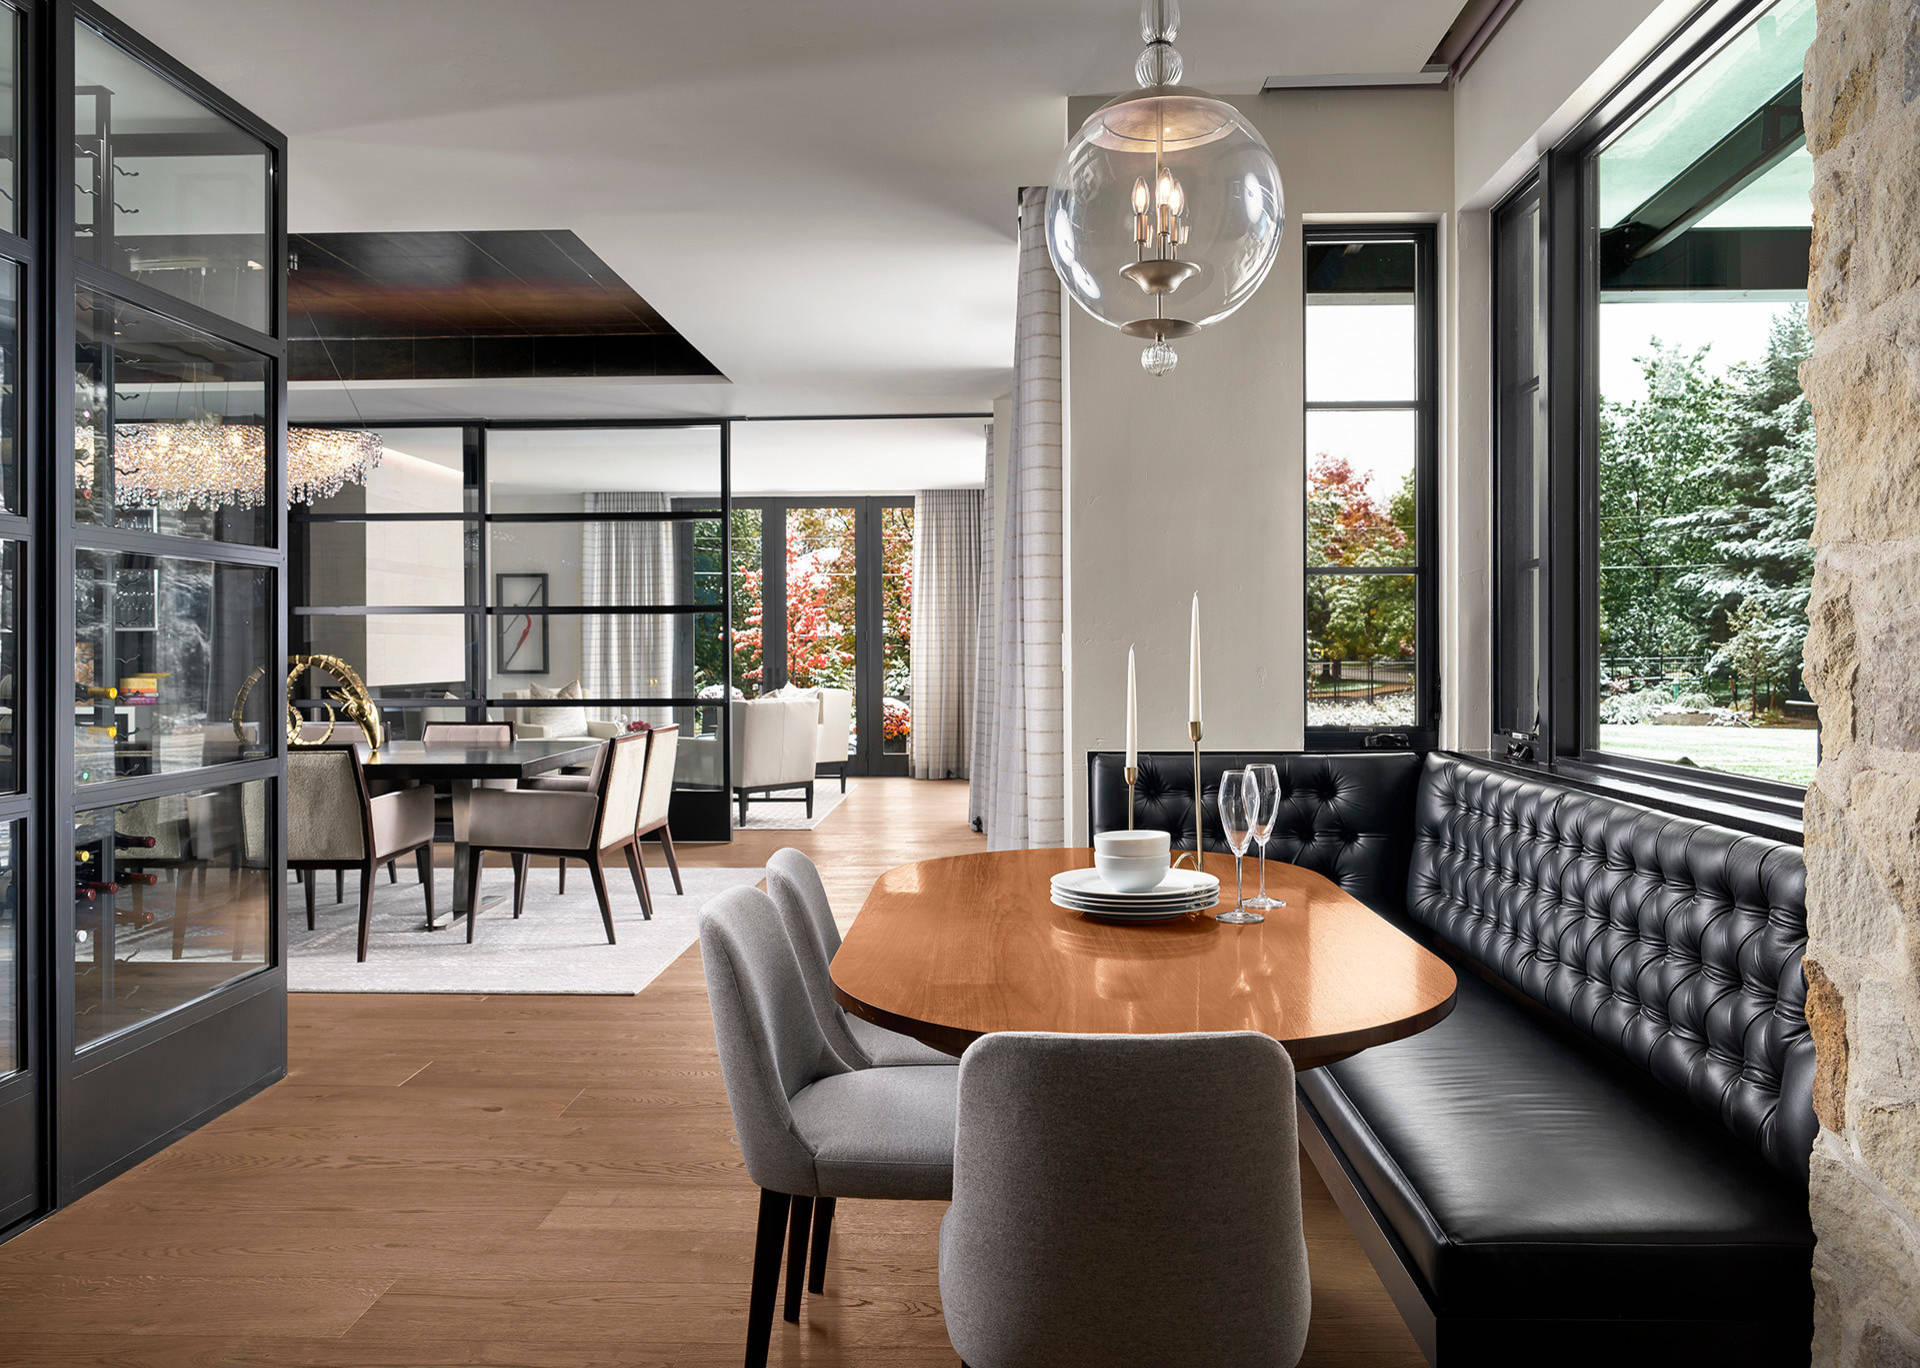 75 Beautiful Small Contemporary Dining Room Pictures Ideas February 2021 Houzz